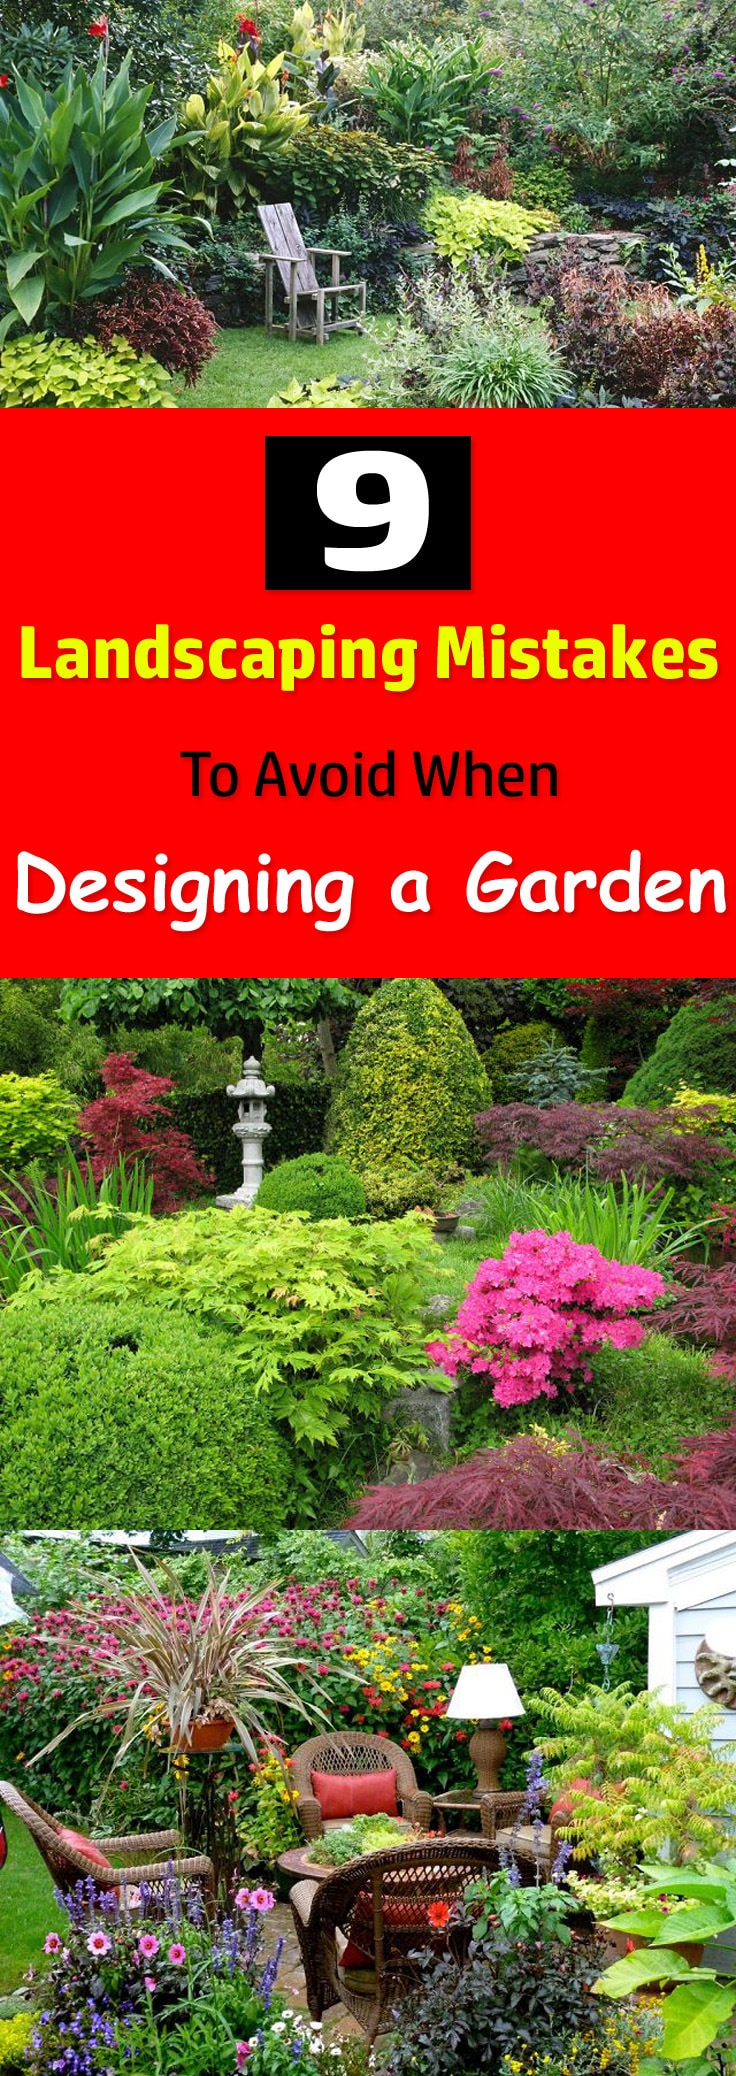 If having a beautiful garden is your biggest dream then avoid doing these 9 landscaping mistakes when designing a garden.